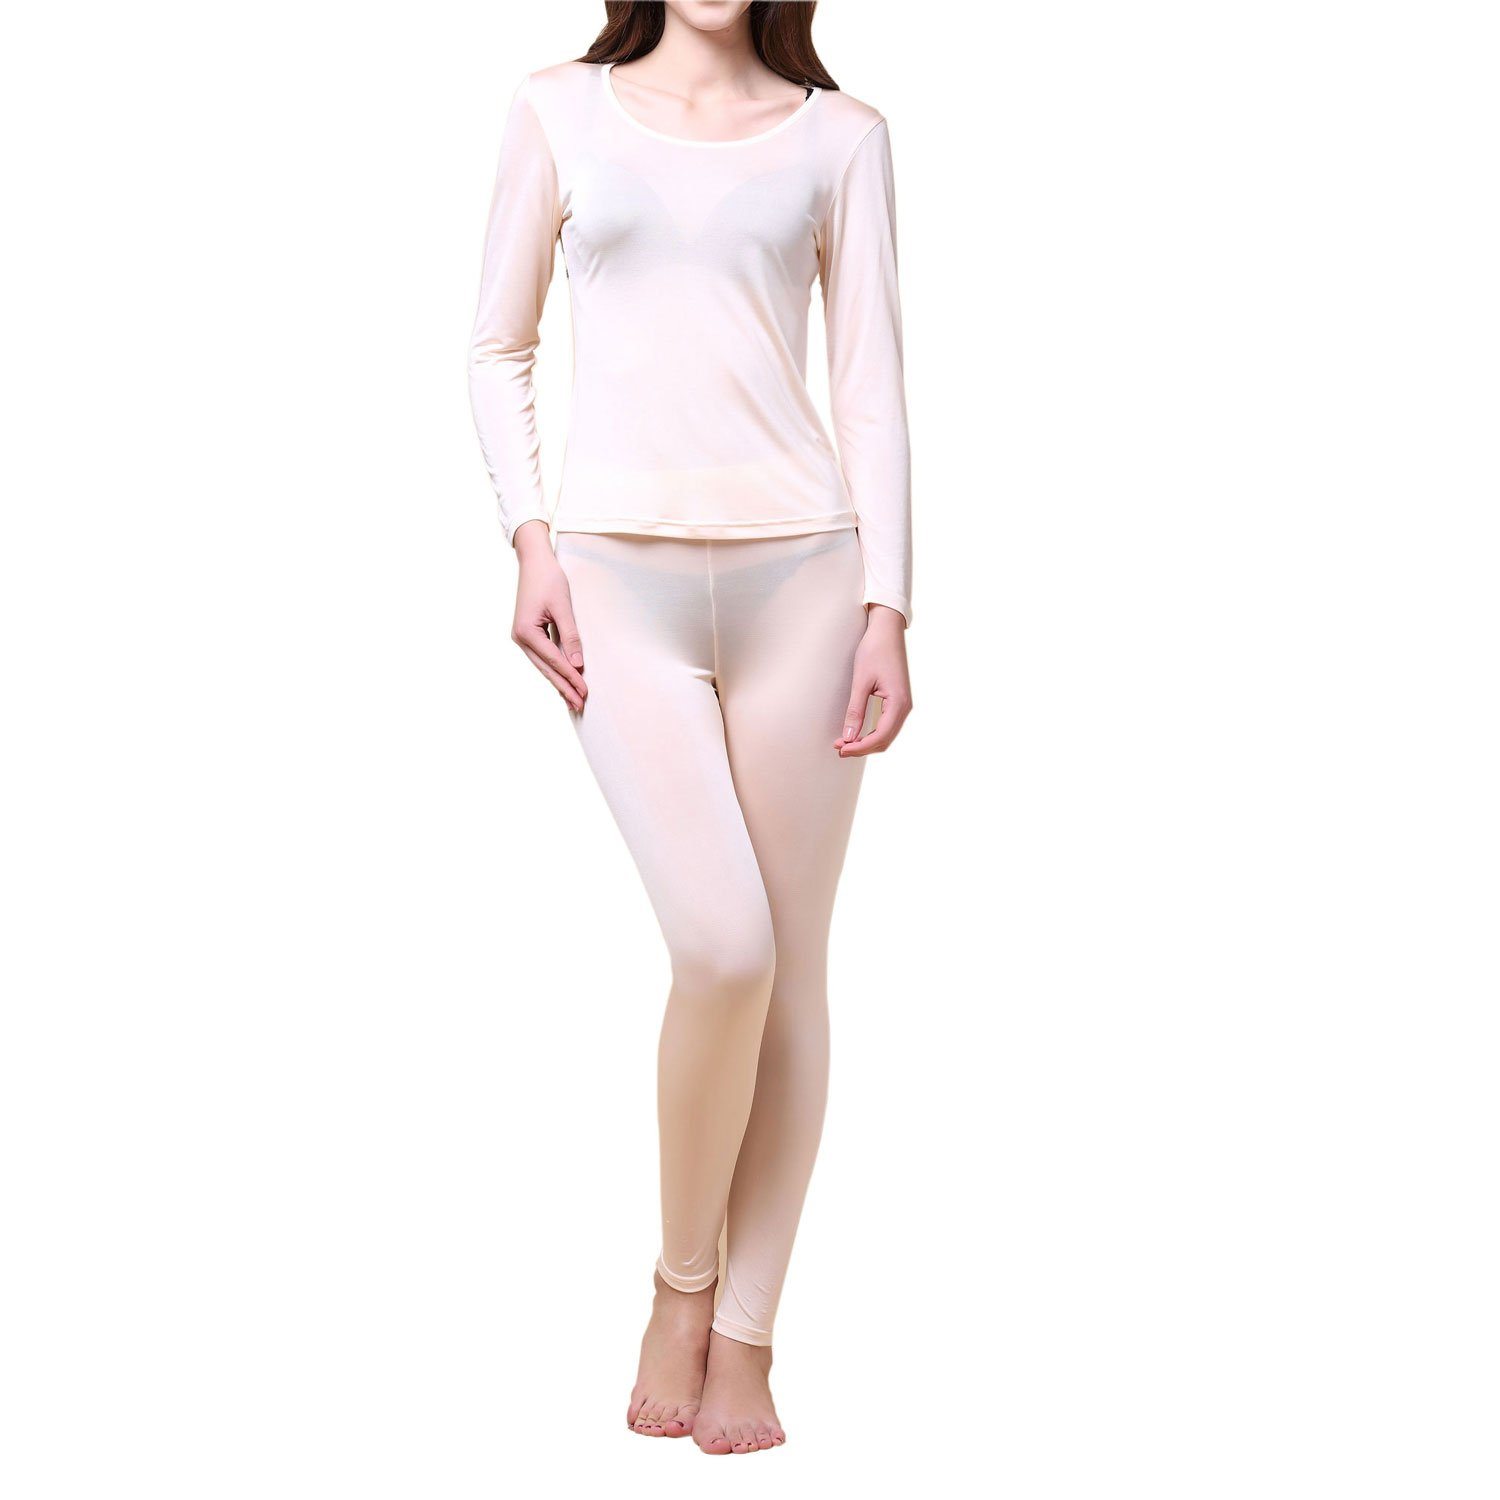 Pure Silk Knit Women Underwear Long Johns Top and Bottom Set[US6,Flesh]